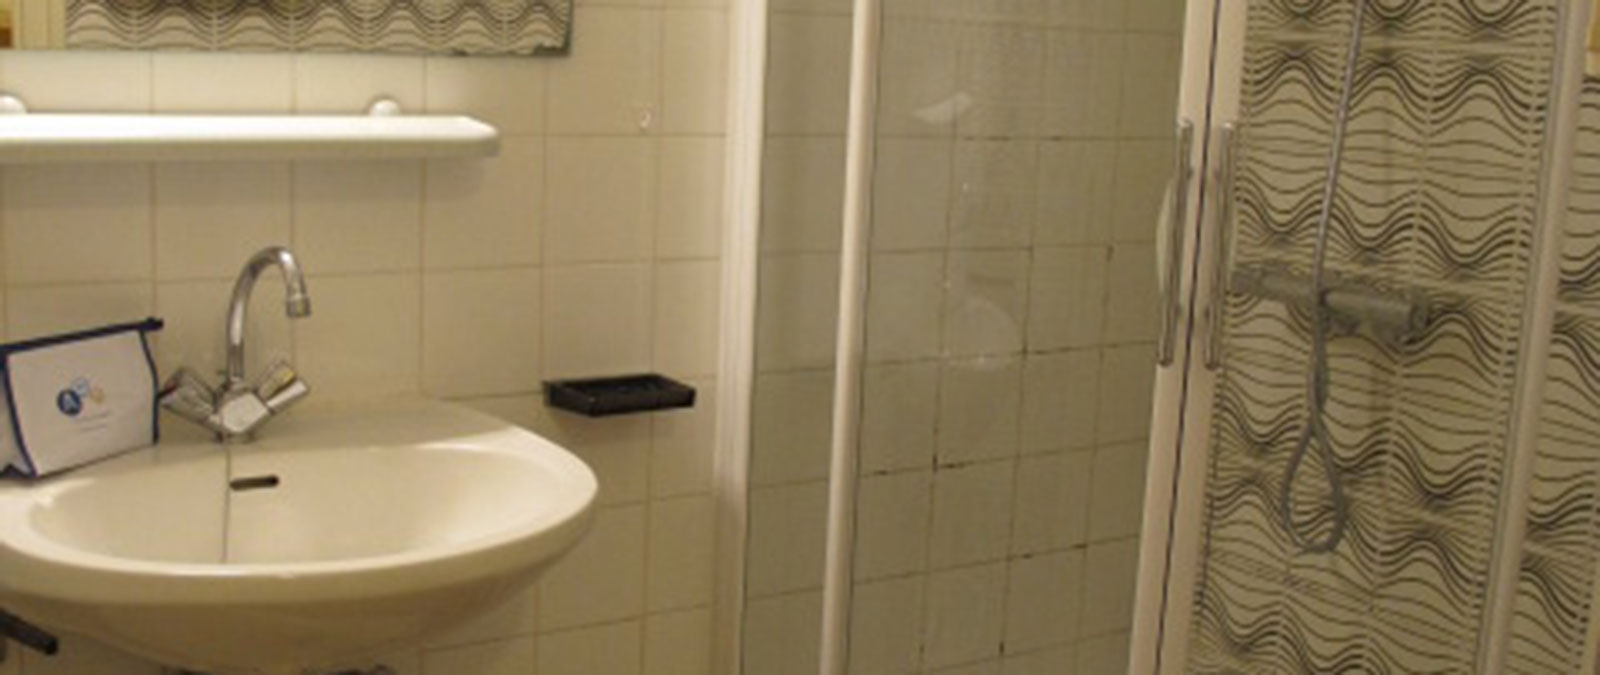 Bathroom Classic naturist studio flat for rent